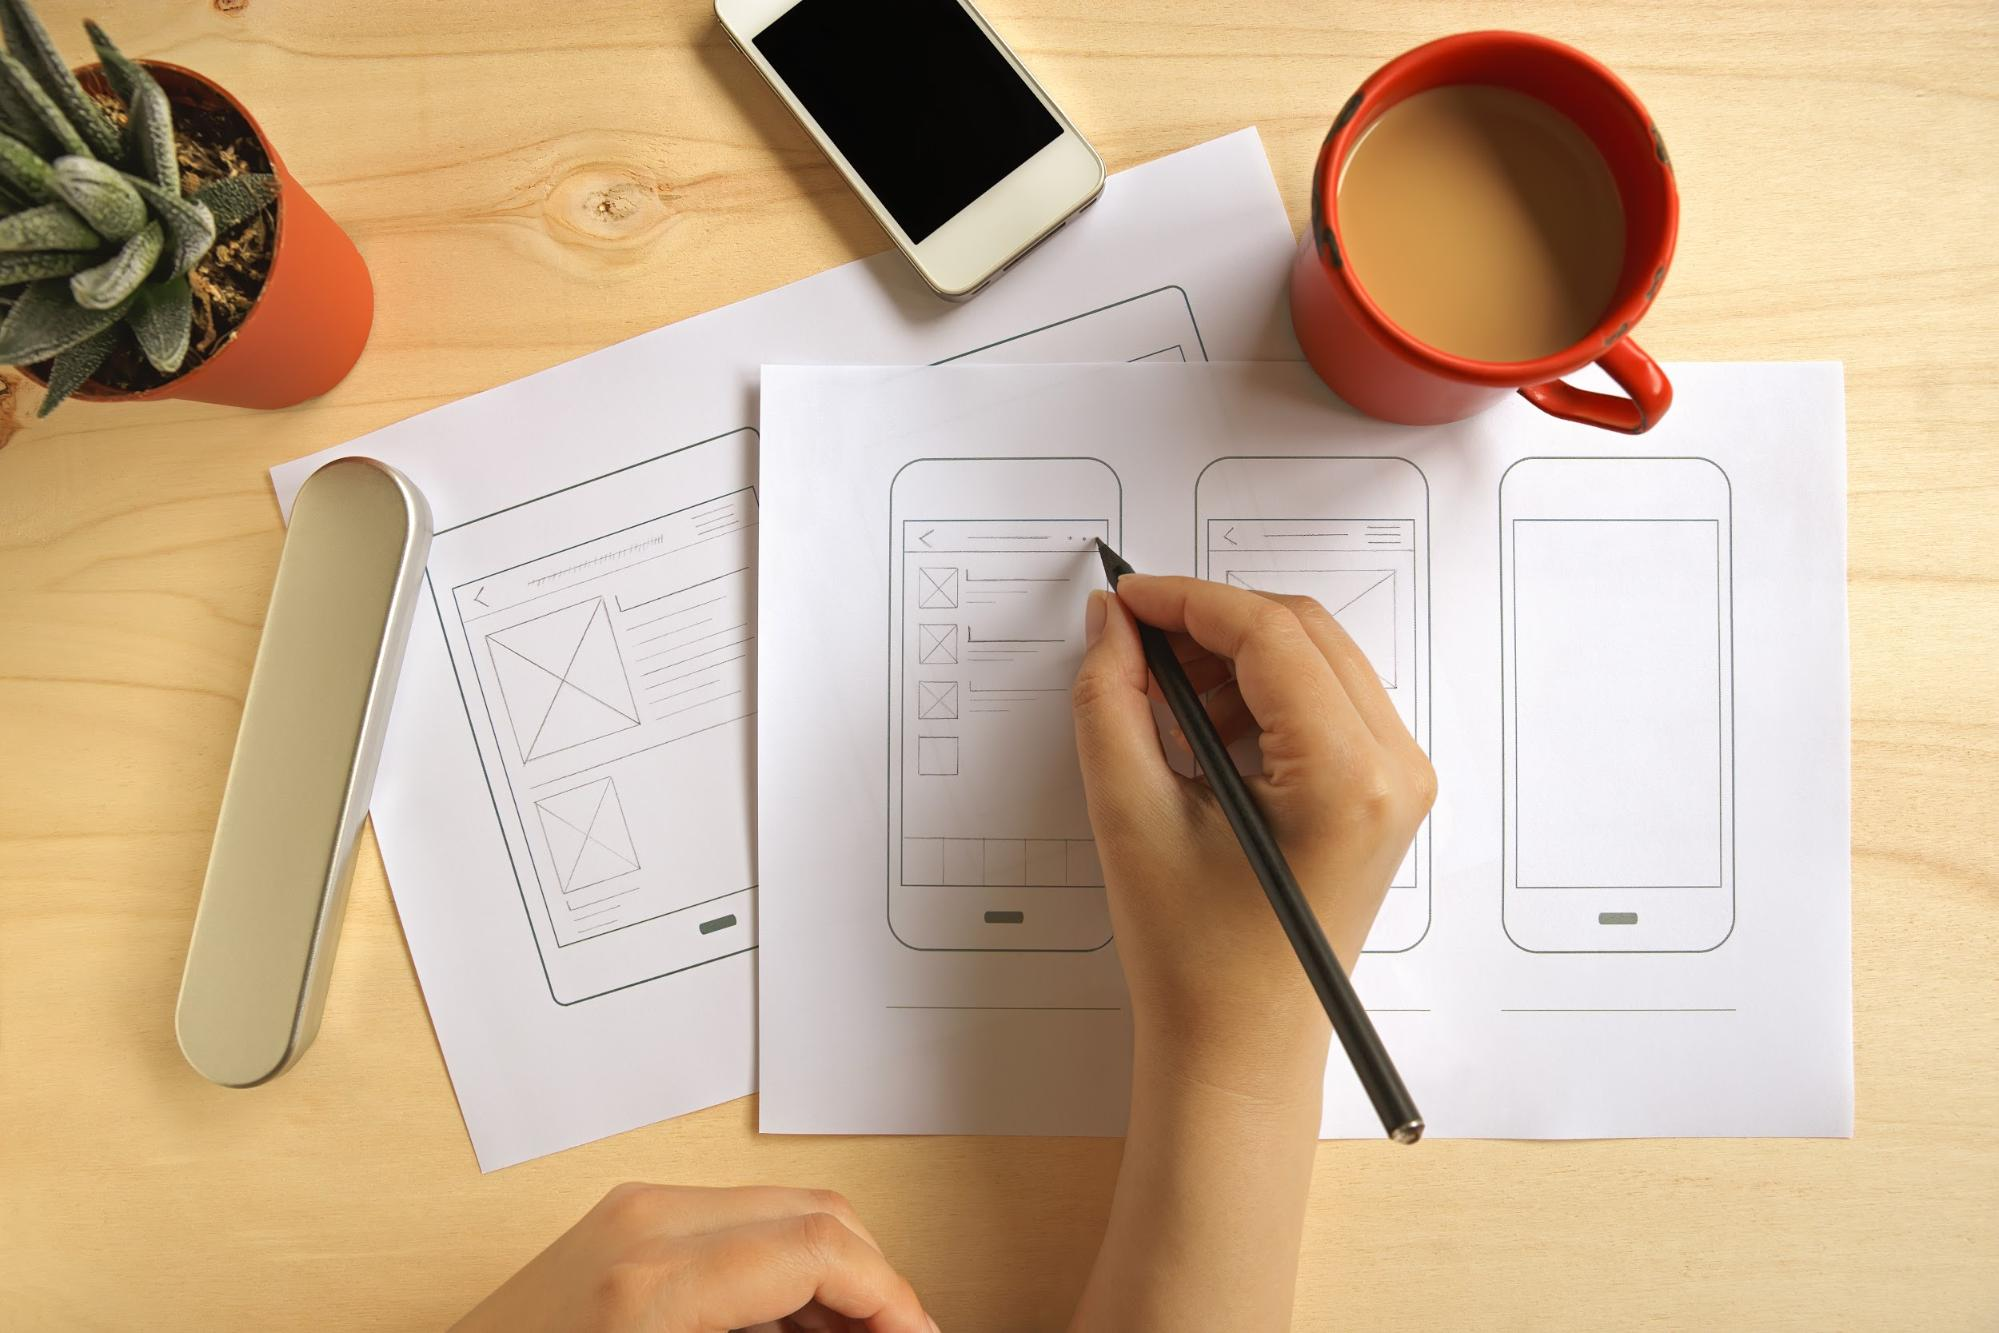 How to Create Mobile App Wireframe